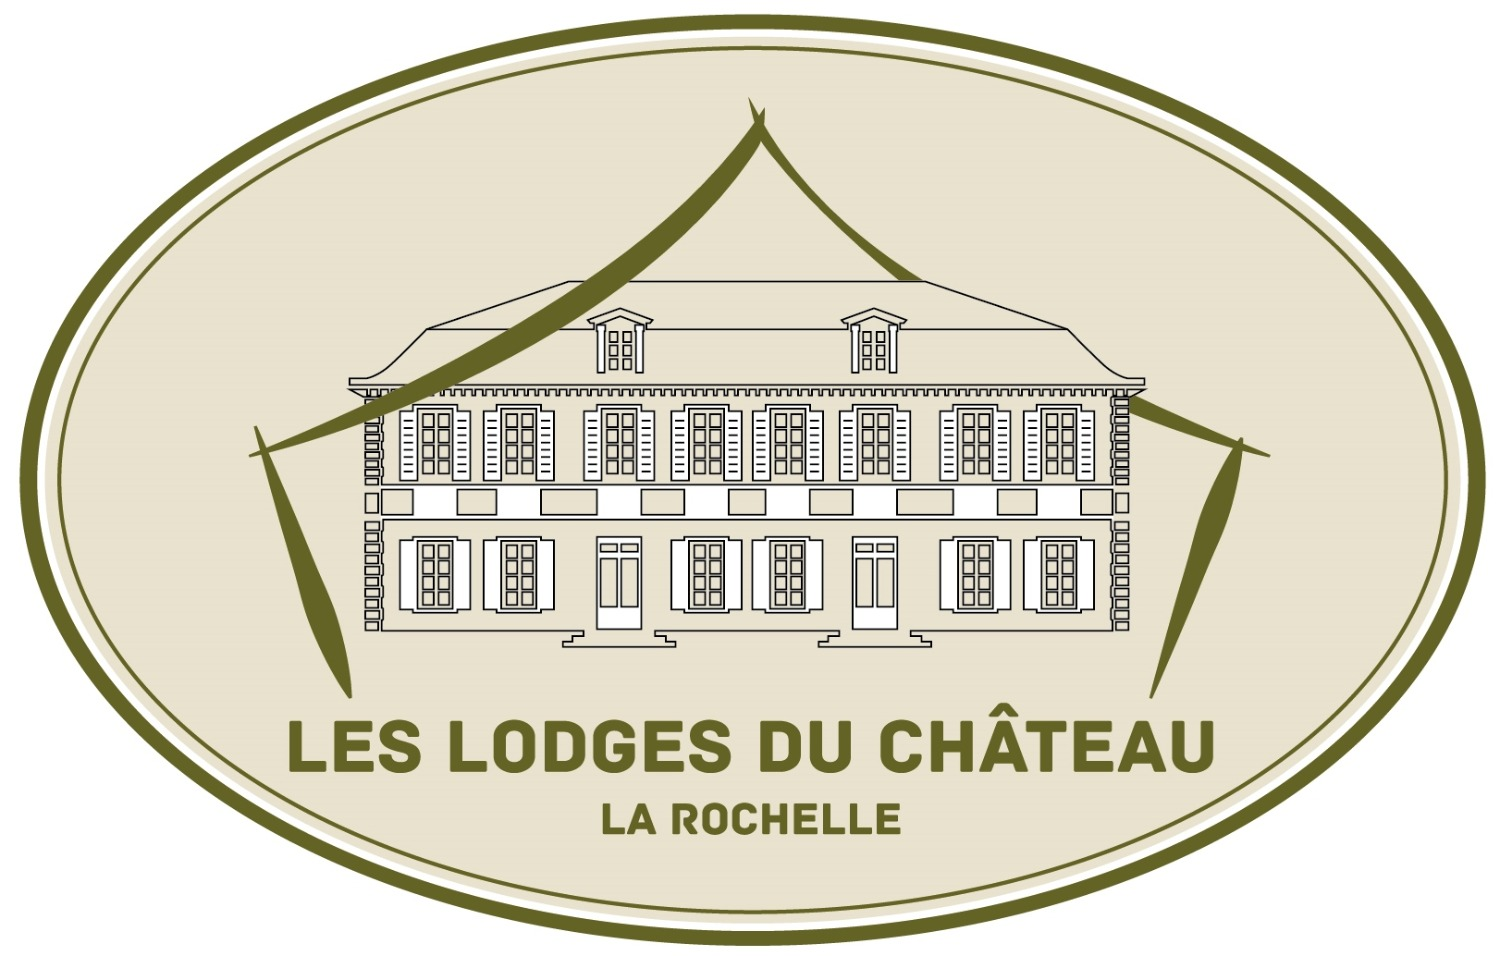 Les Lodges du Chateau-LR oval_edited